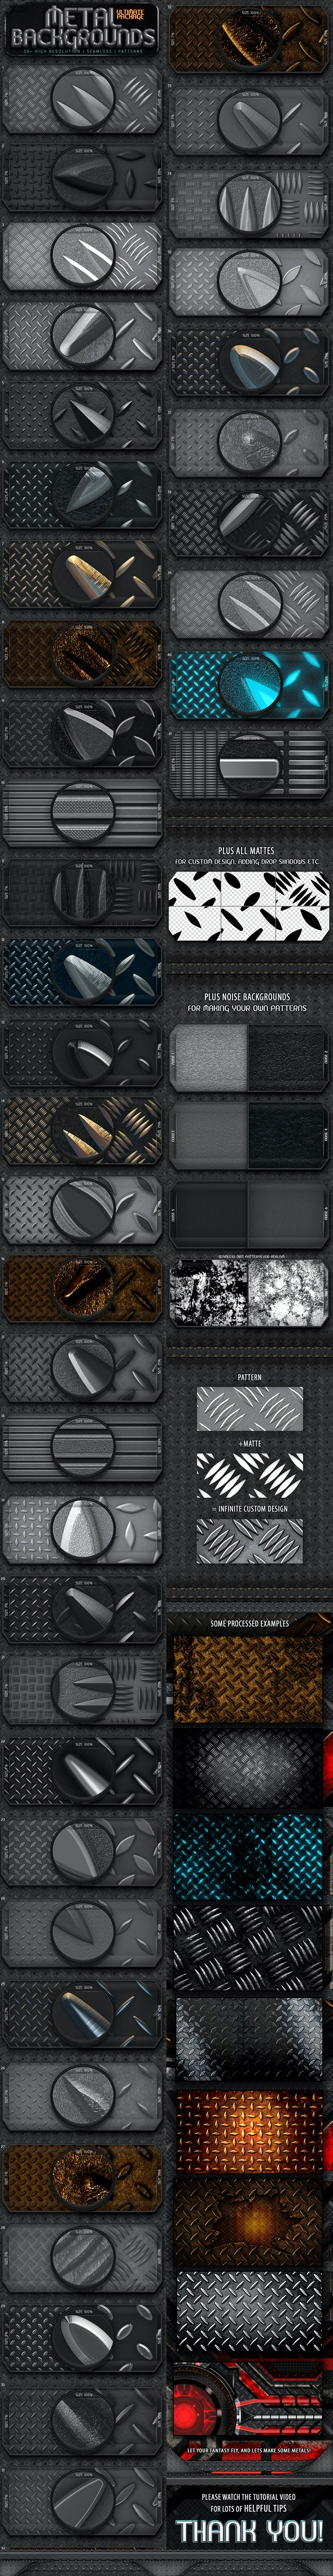 Metal Background Patterns - Miscellaneous Textures / Fills / Patterns